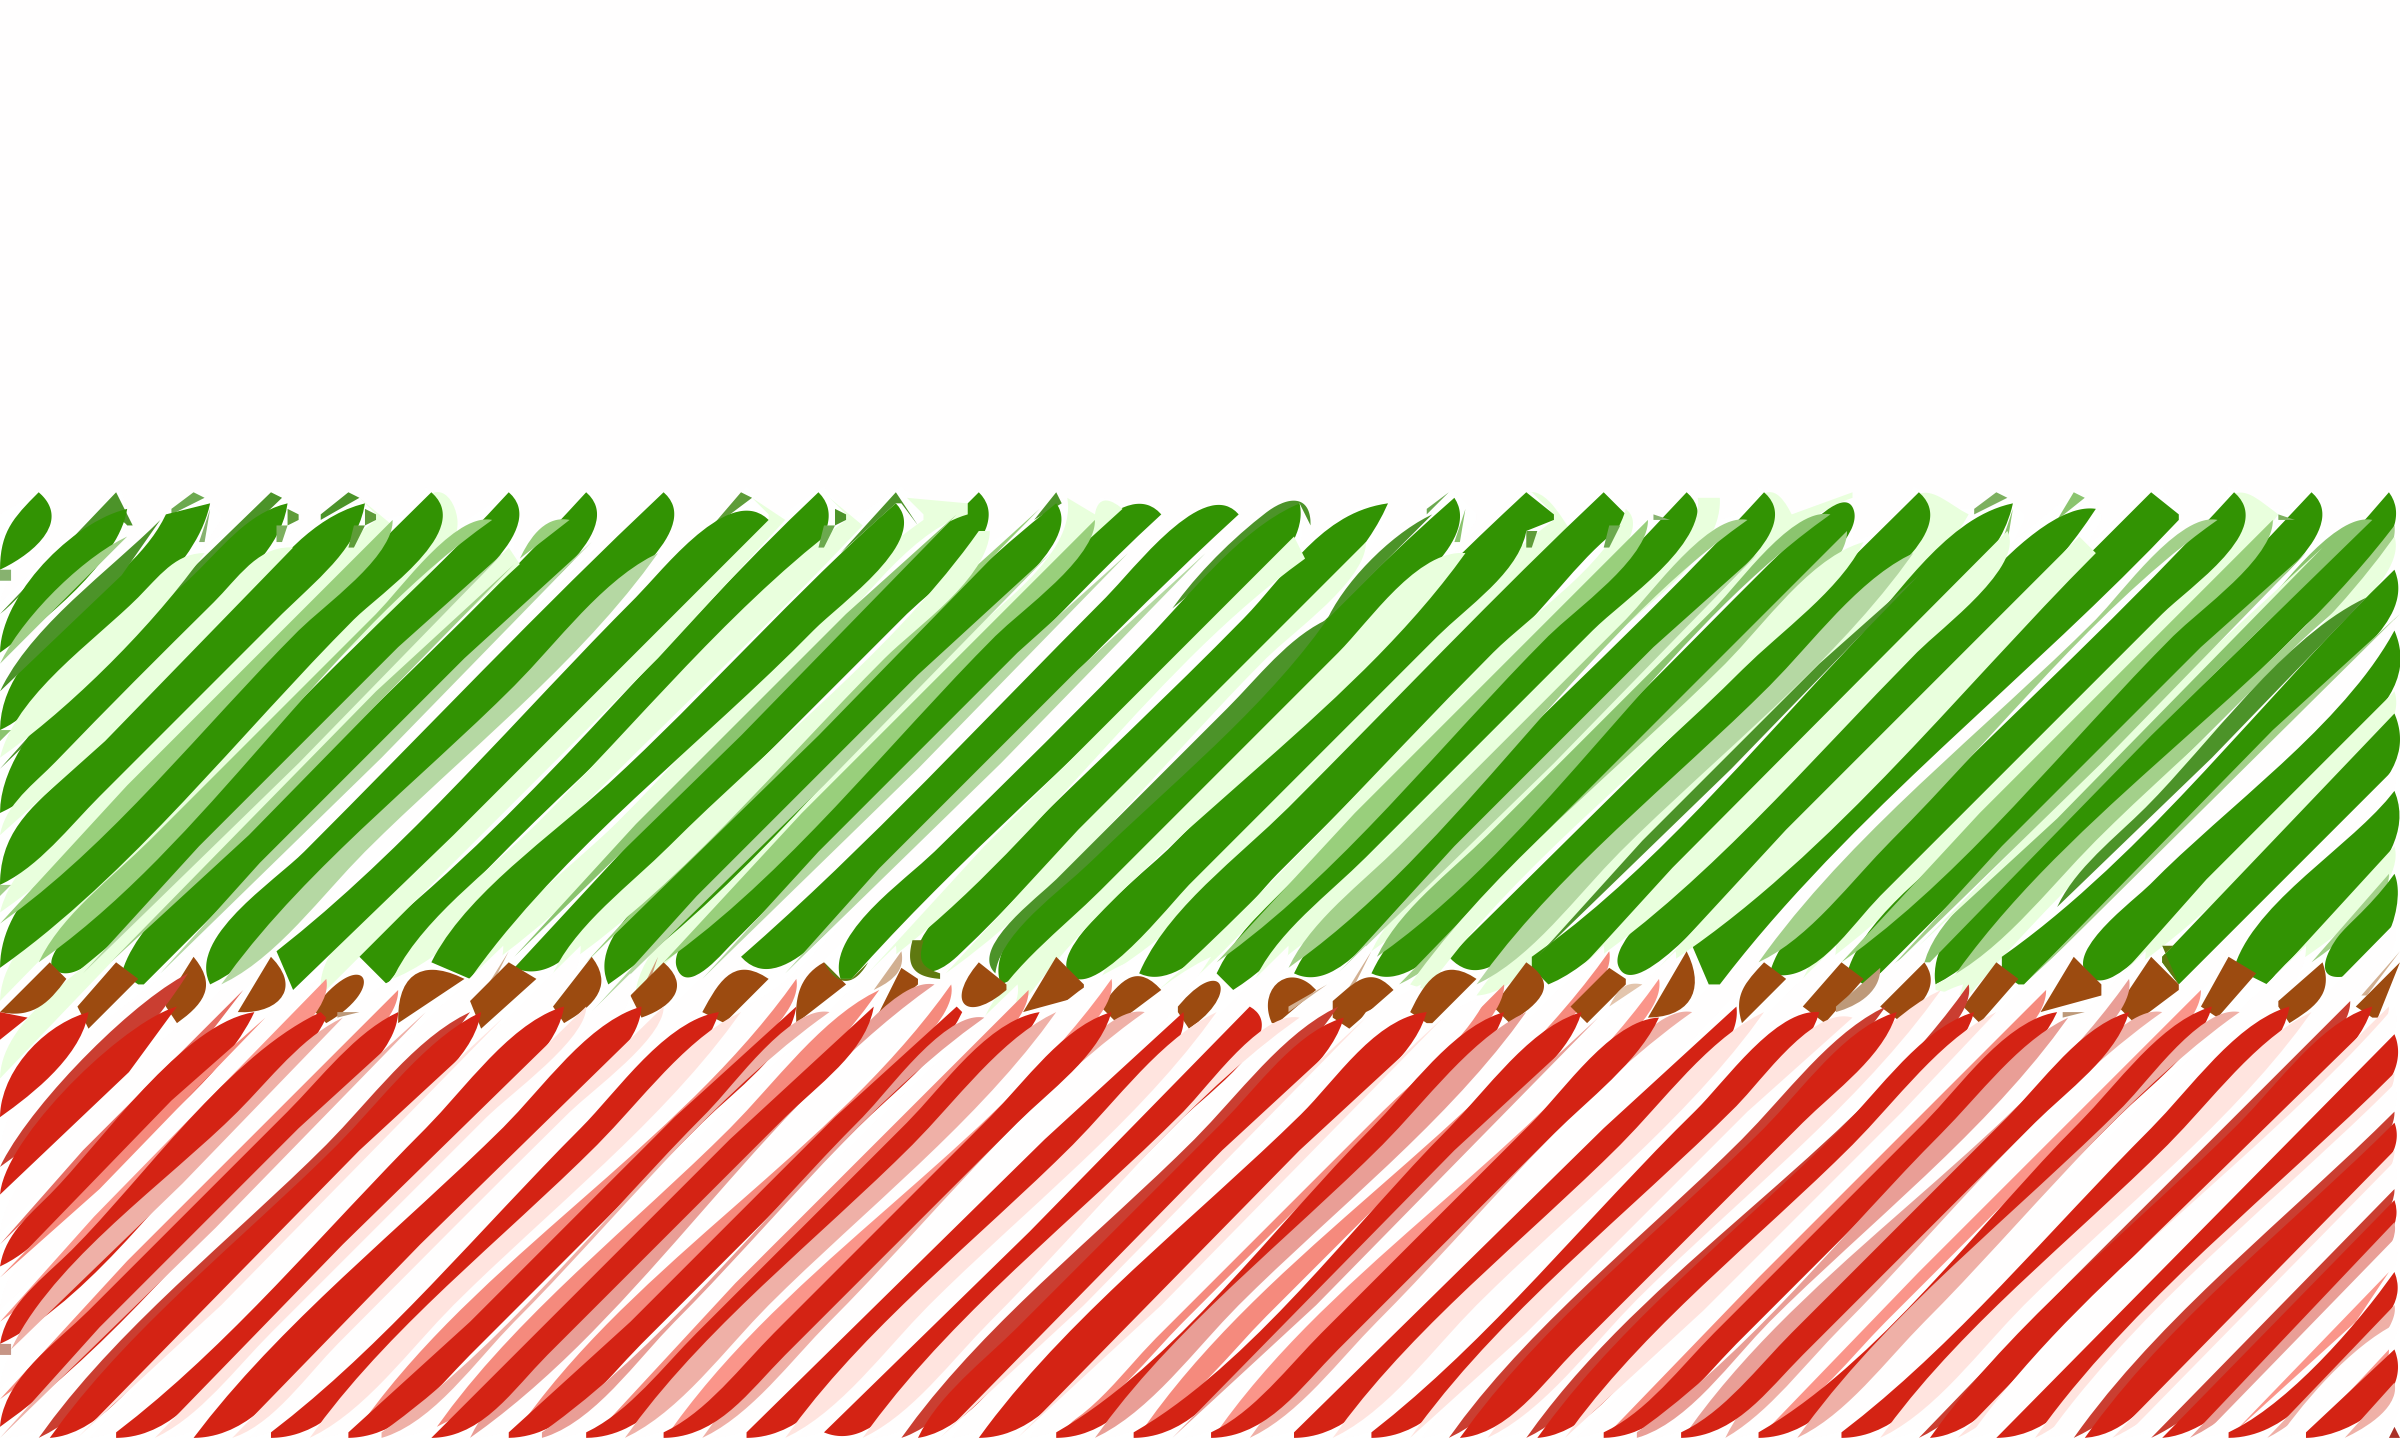 Bulgaria flag linear by Joesph